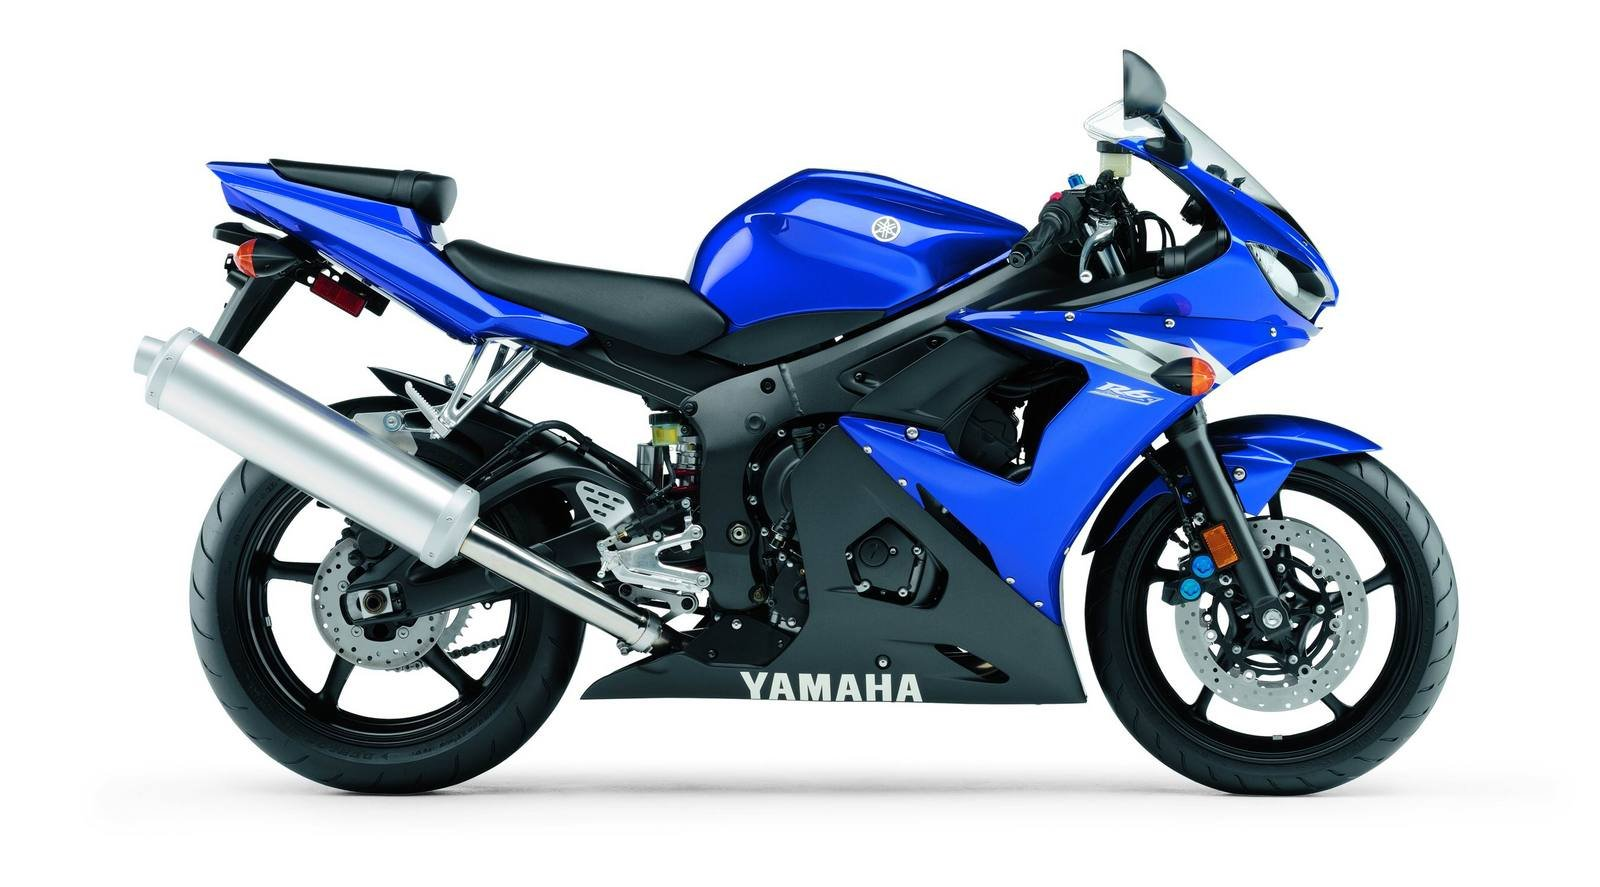 2006 yamaha yzf r6s review top speed for 2006 yamaha yzf r6